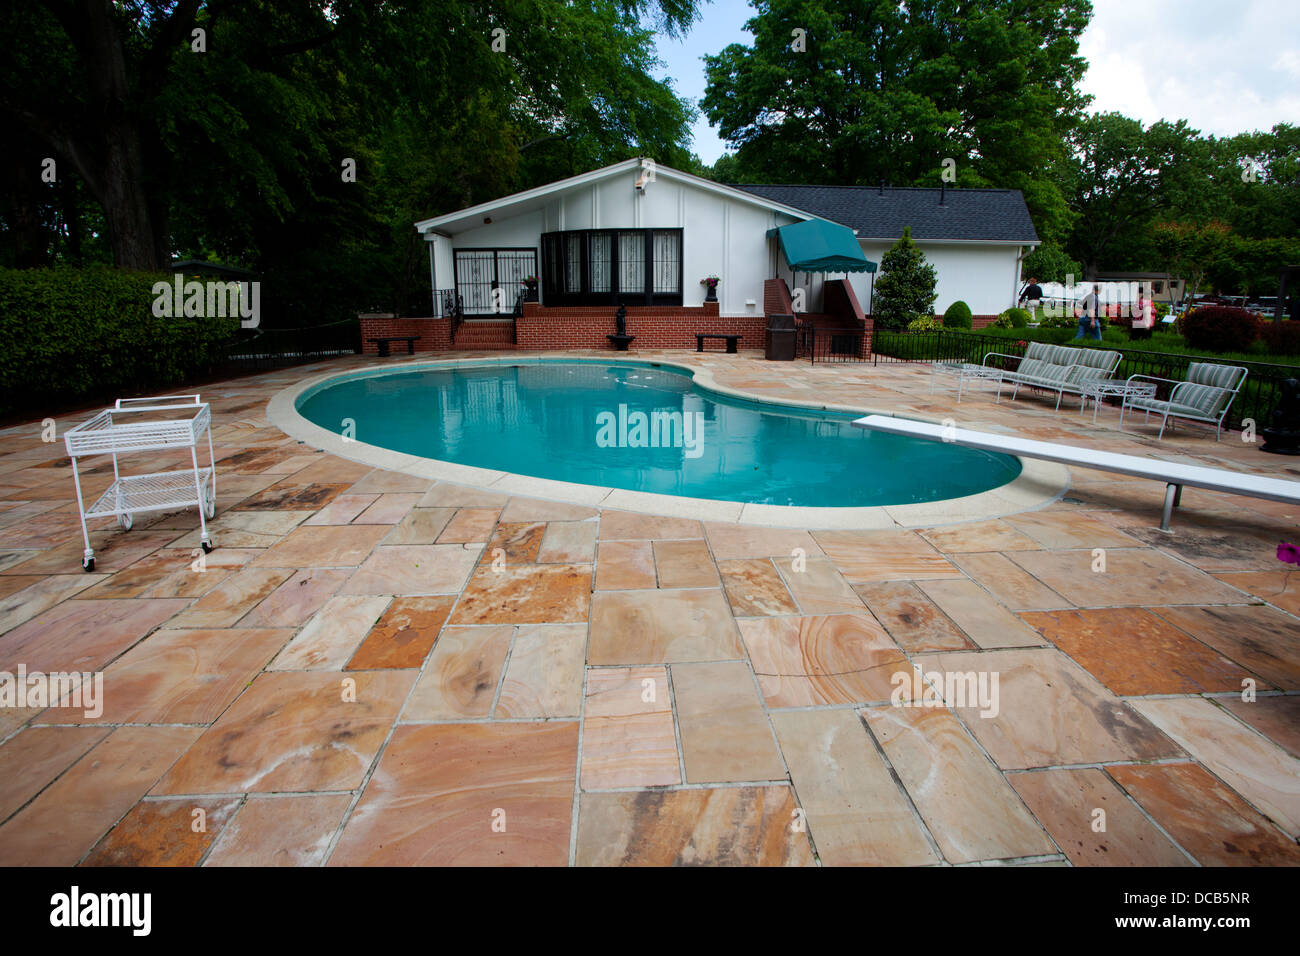 The Swimming Pool At Graceland The Home Of Elvis Presley In Memphis Stock Photo Royalty Free